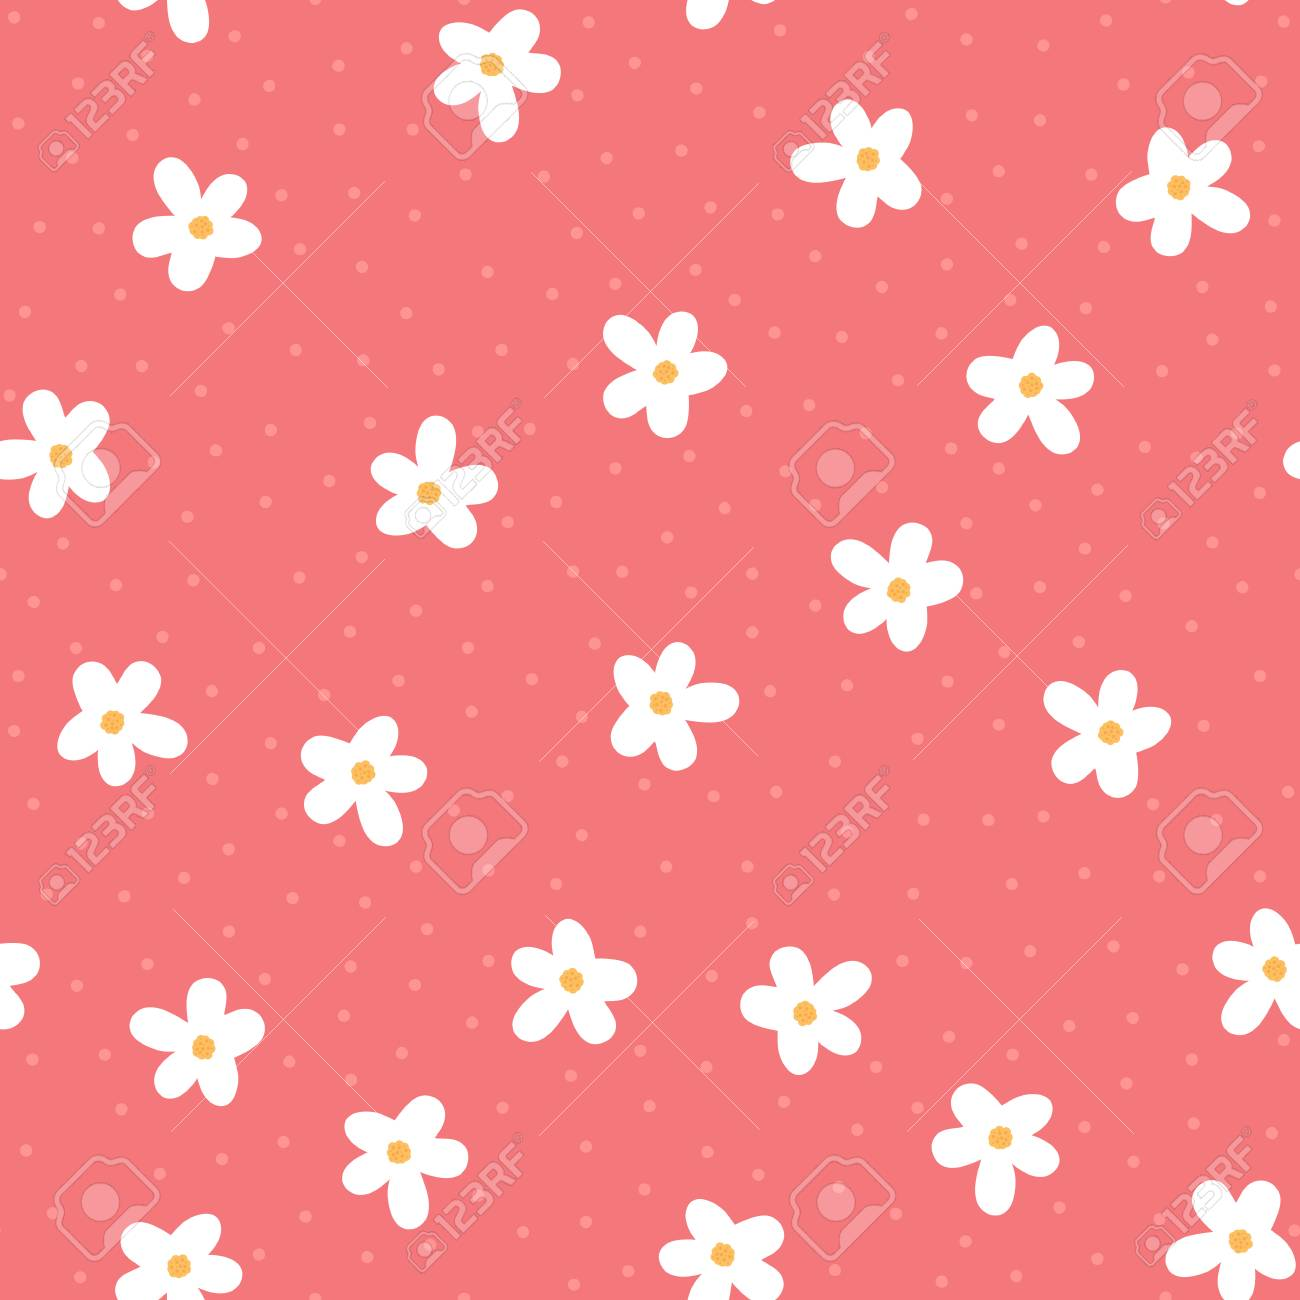 girly floral seamless pattern endless vector illustration stock